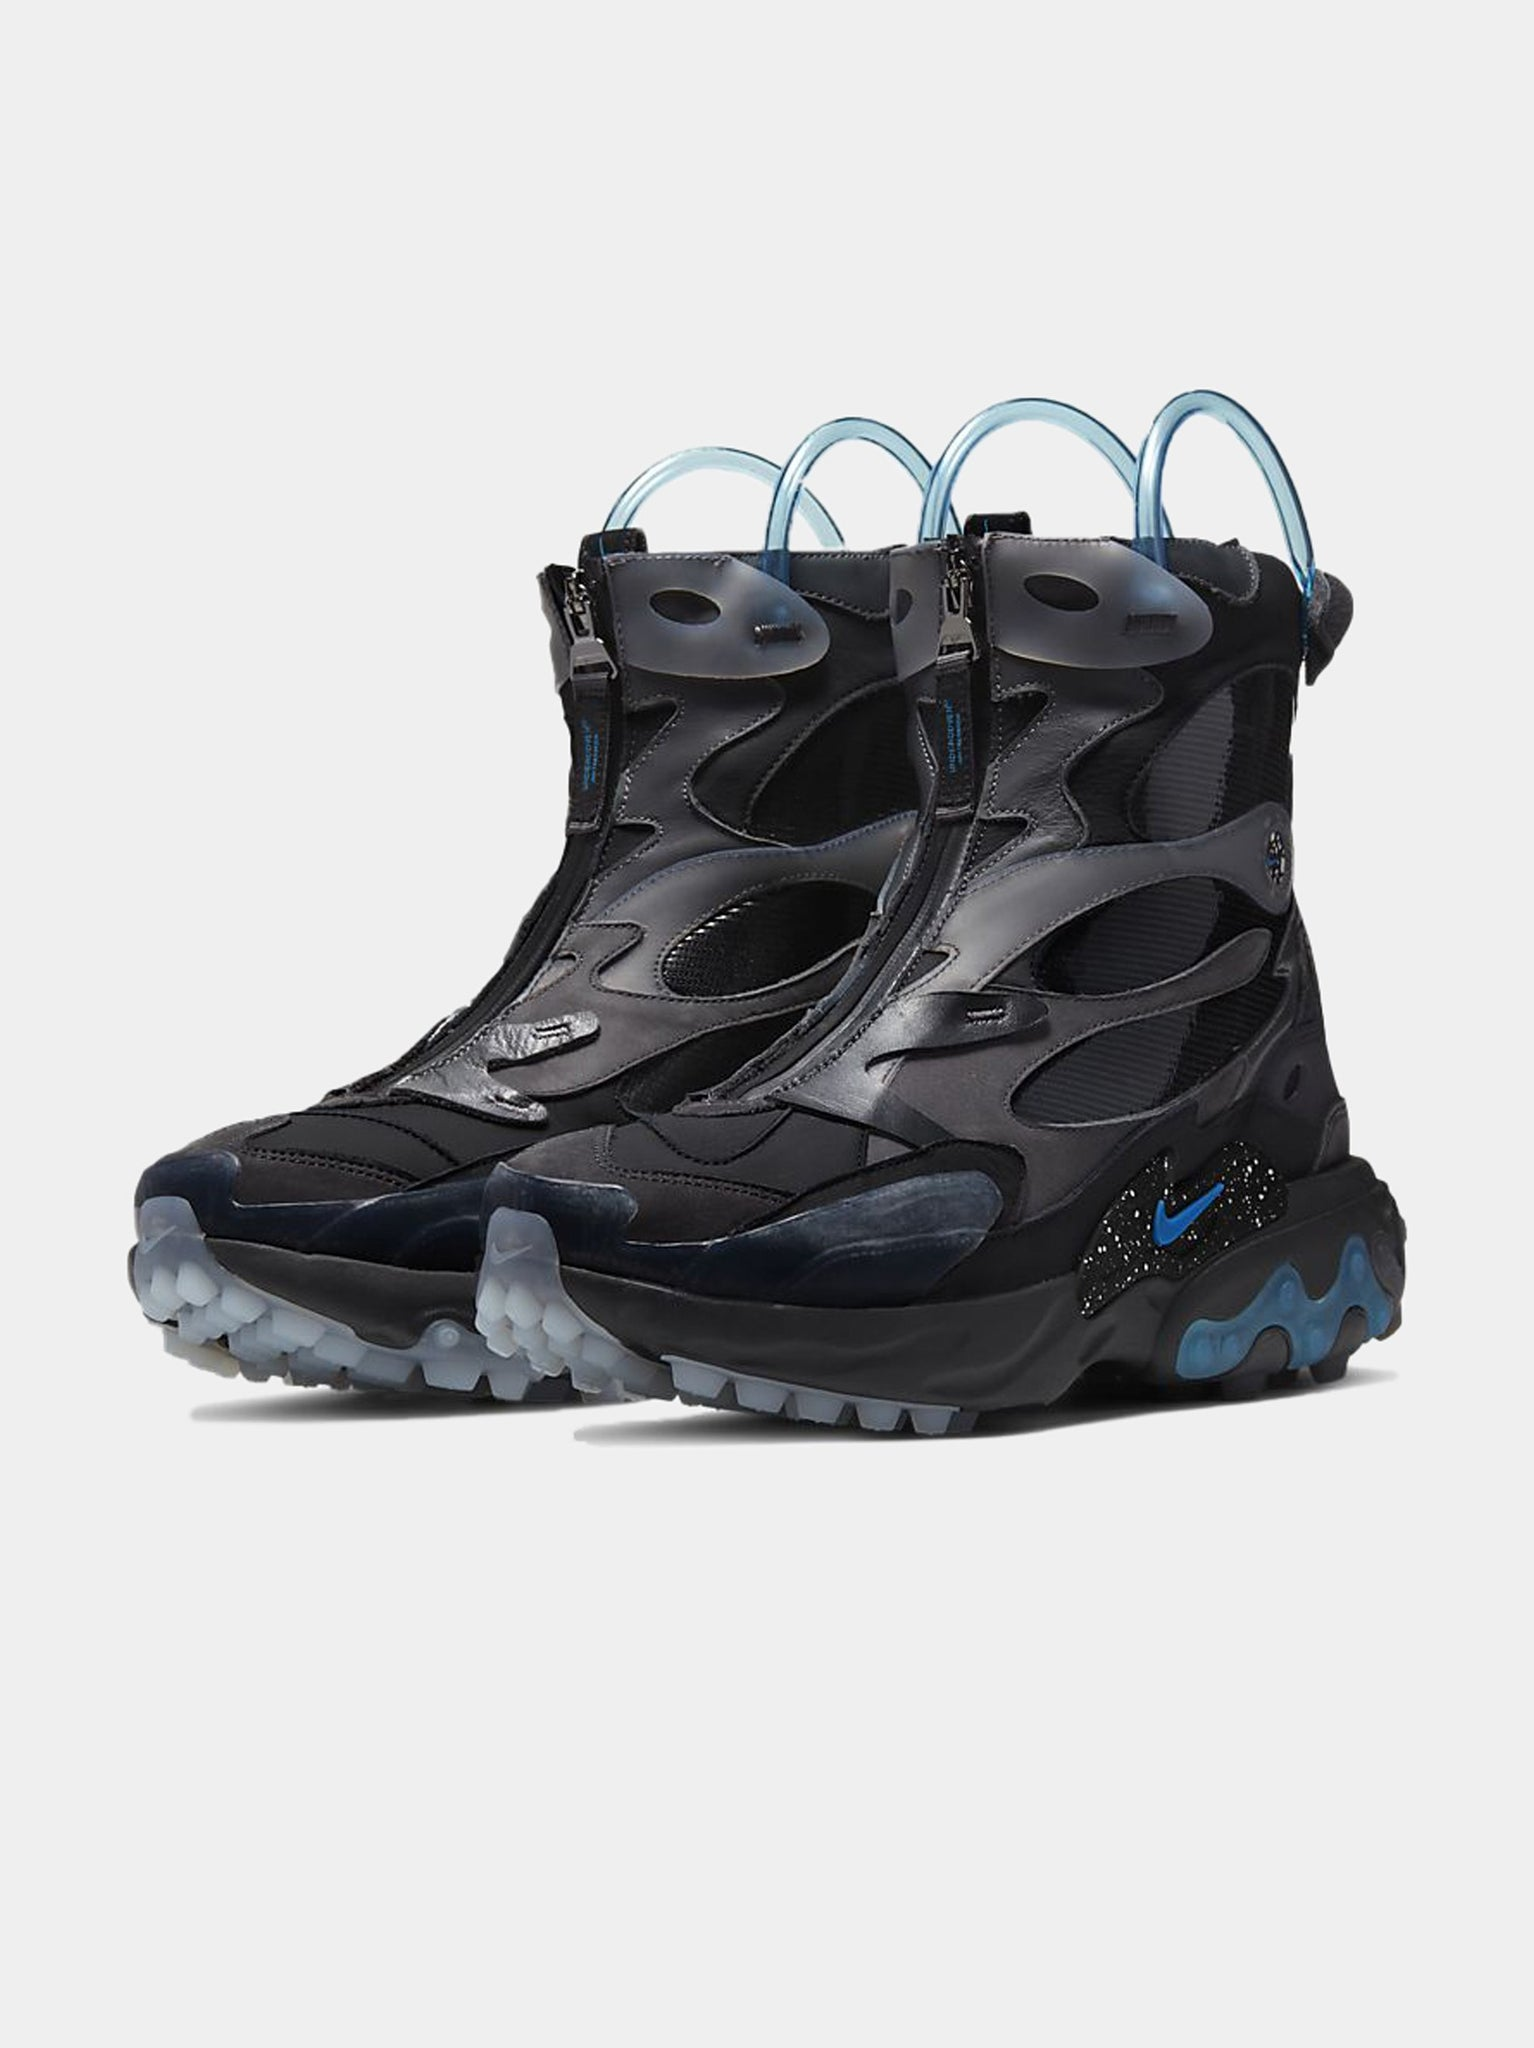 nike-x-undercover-react-boot-1